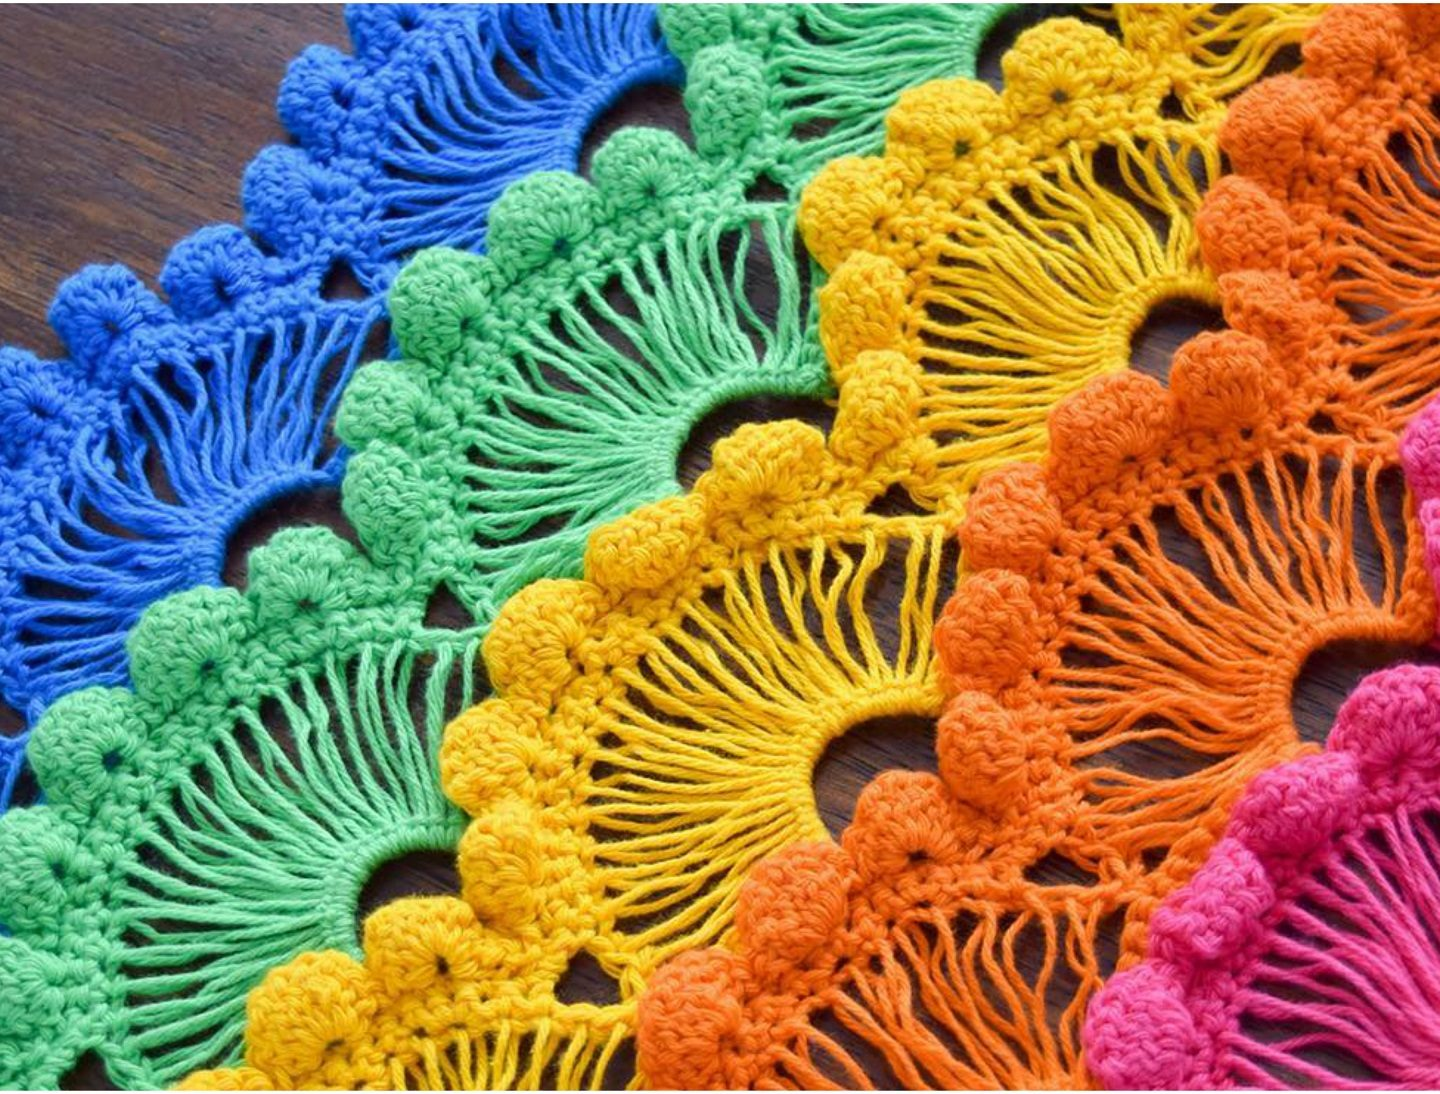 Crochet Fan Stitch – Step By Step Tutorials